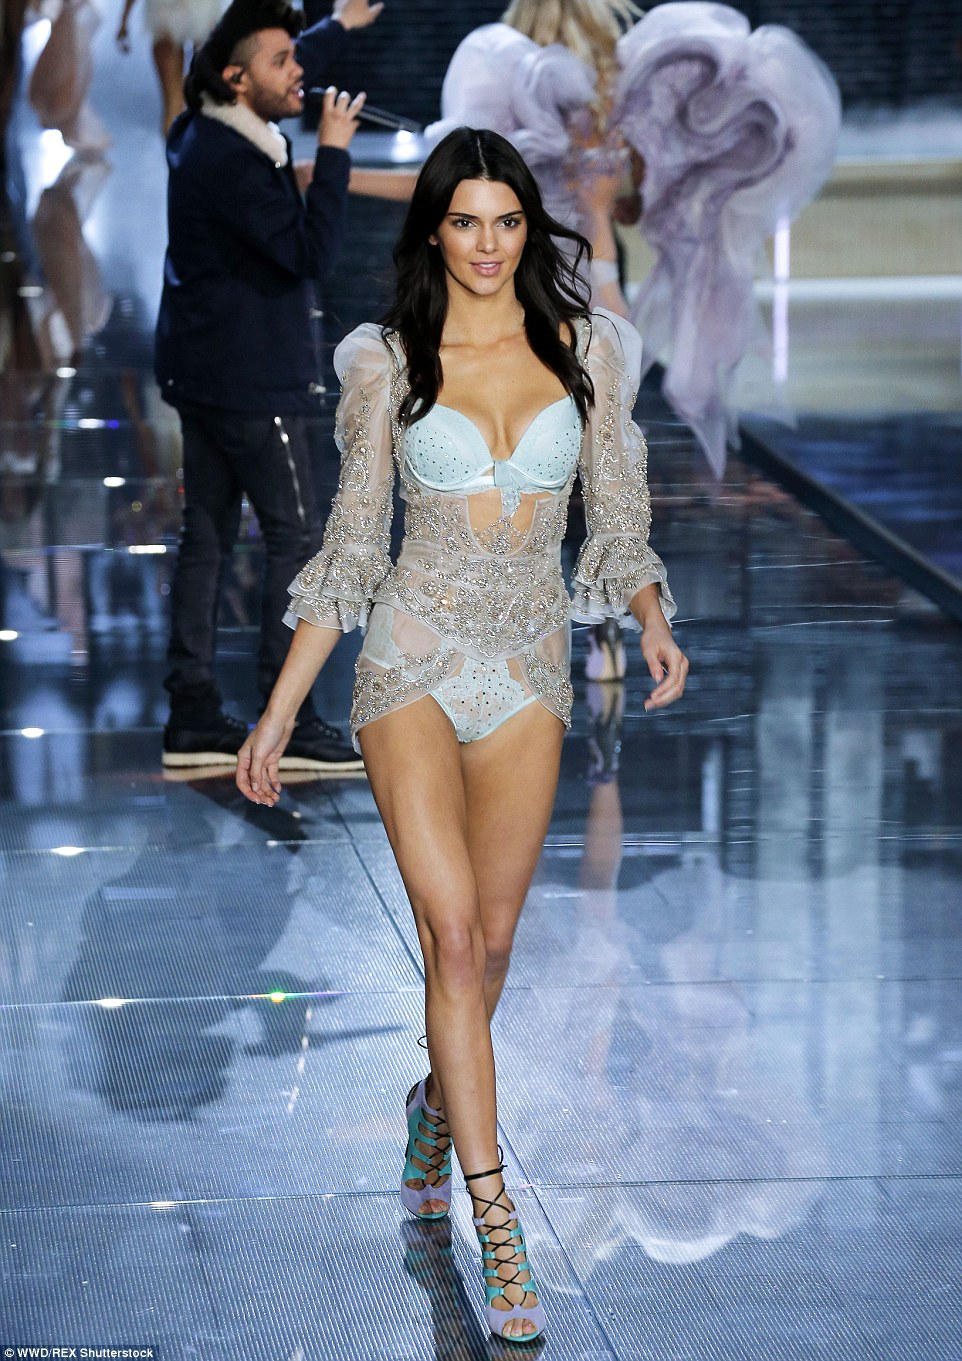 Kendall stuns at the Victoria's Secret Fashion Show 2015